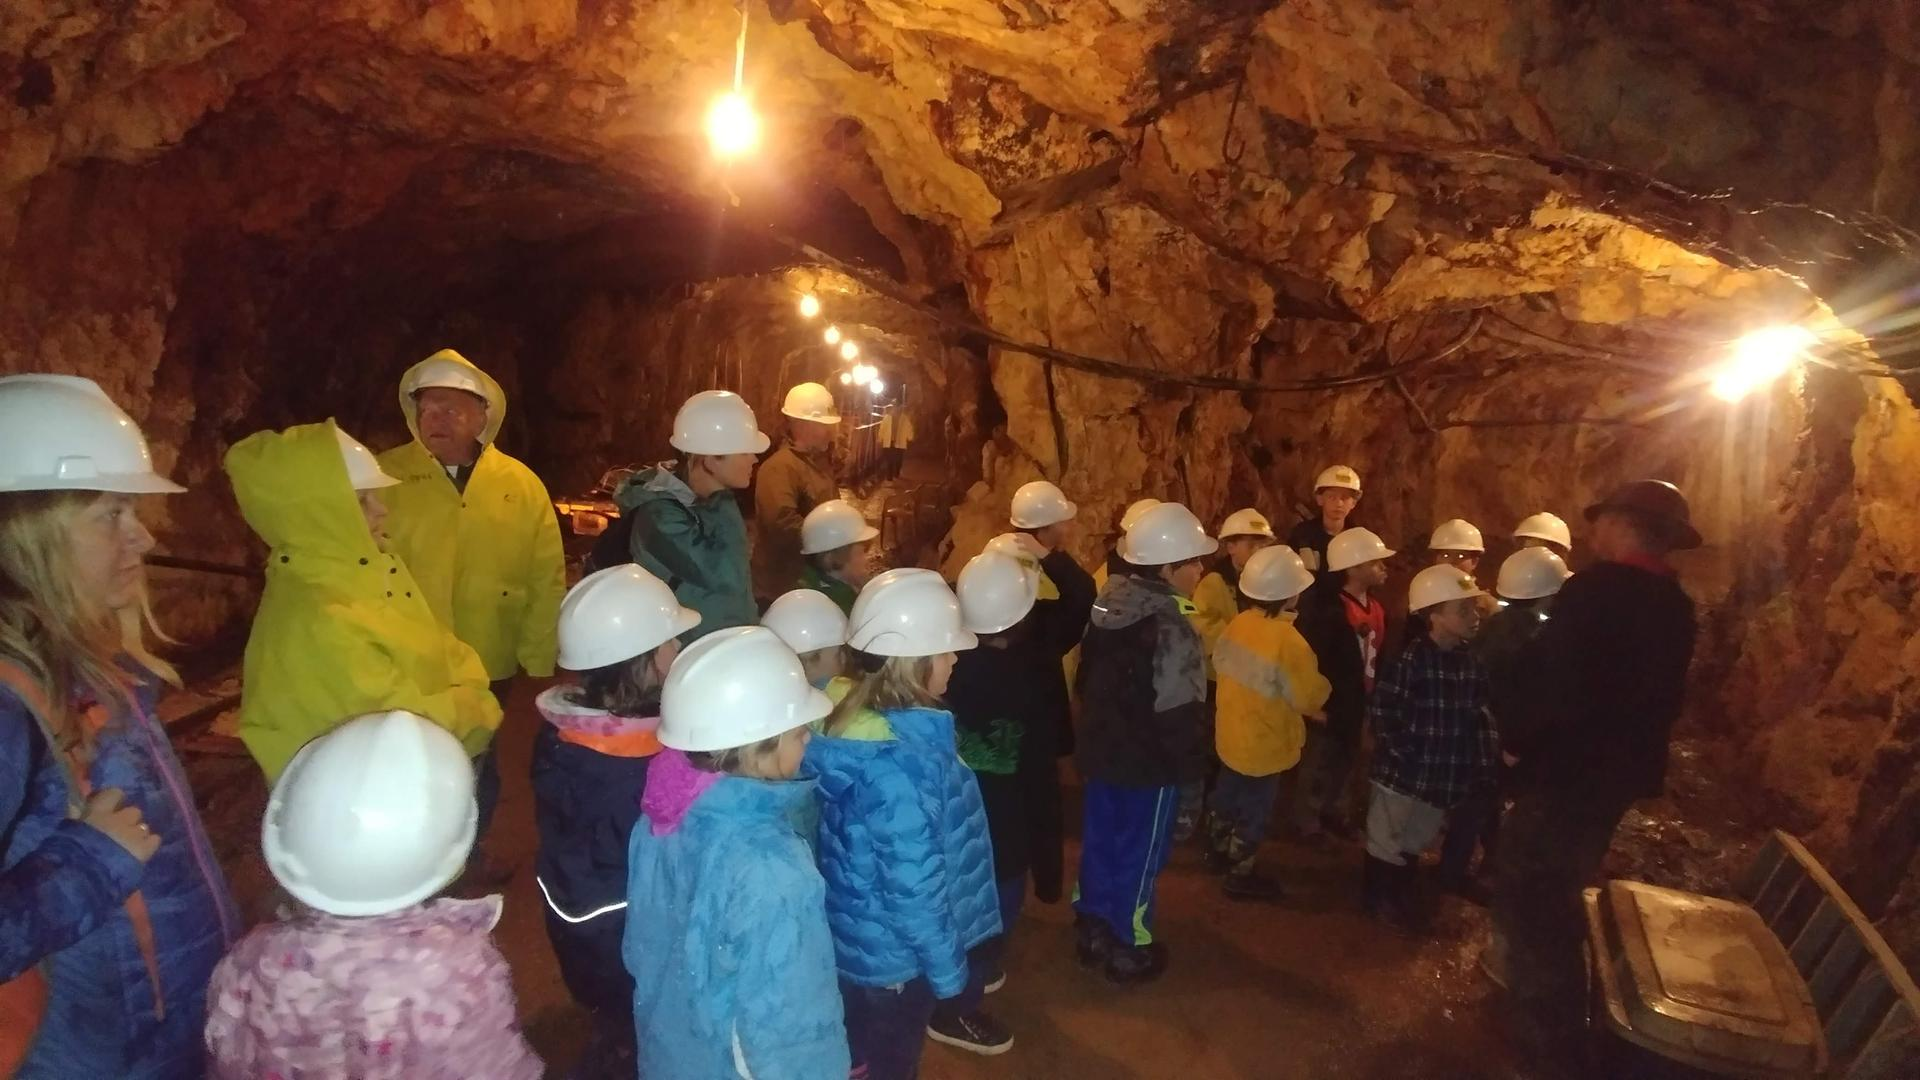 Into the mine!